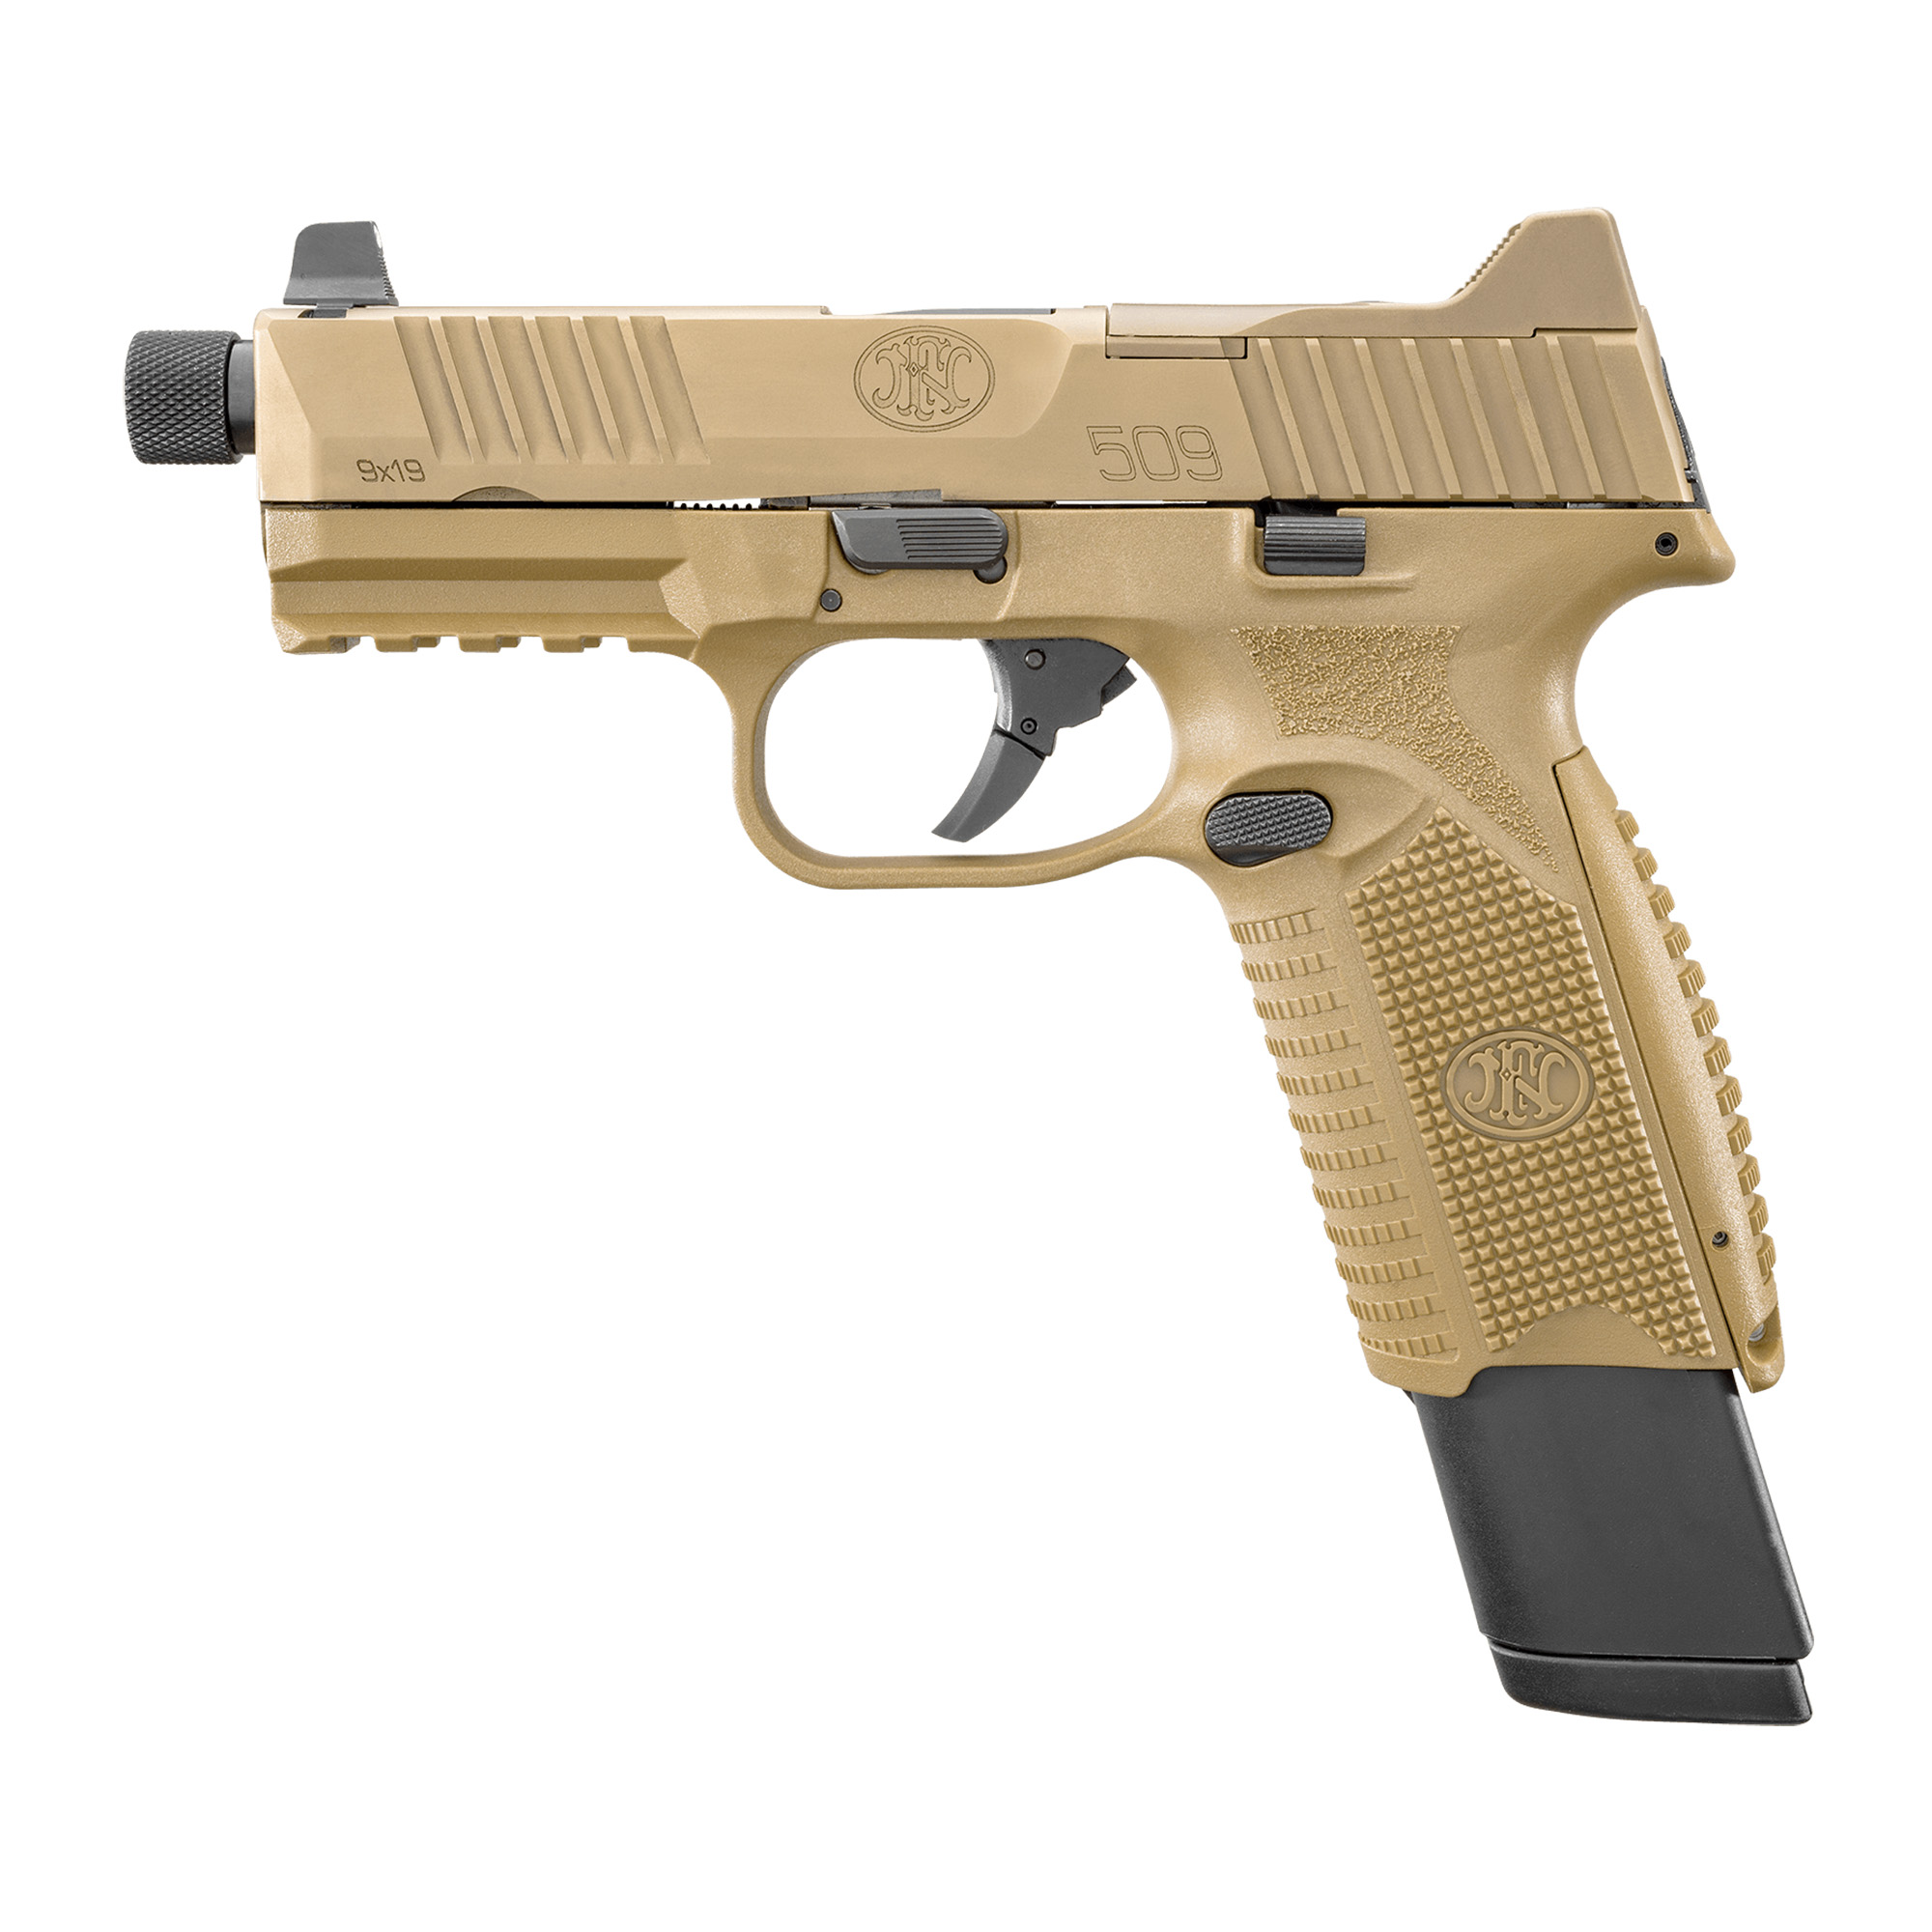 """The FN 509(R) Tactical"""" an extension of the FN 509 family"""" is based on FN's submission pistol that the U.S. Army tested for its Modular Handgun Trials"""" but includes the significant improvements to the design that were implemented in the FN 509. The pistol features the company's patent-pending Low-Profile Optics Mounting System(TM) that enables the platform to accept more than ten commercially-available miniature red dot (MRD) optics that co-witness with the suppressor-height night sights and remain adaptable to future optics releases with no requirement of direct milling of the slide."""